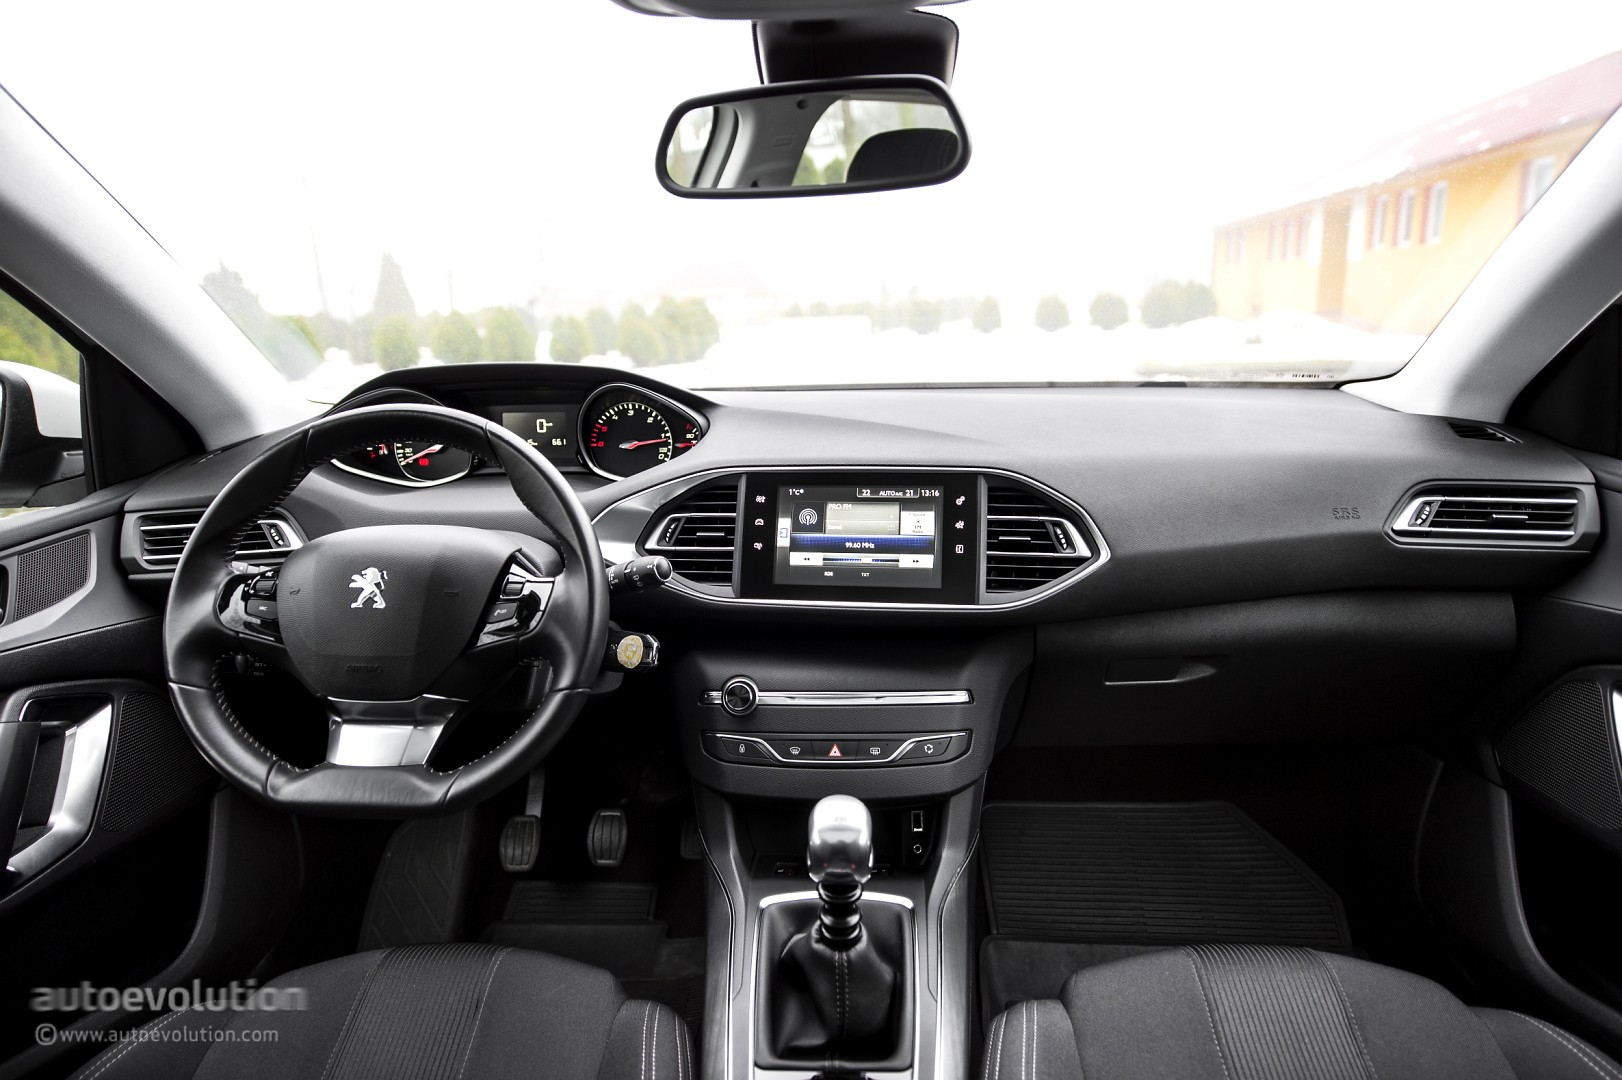 2015 peugeot 308 review autoevolution. Black Bedroom Furniture Sets. Home Design Ideas